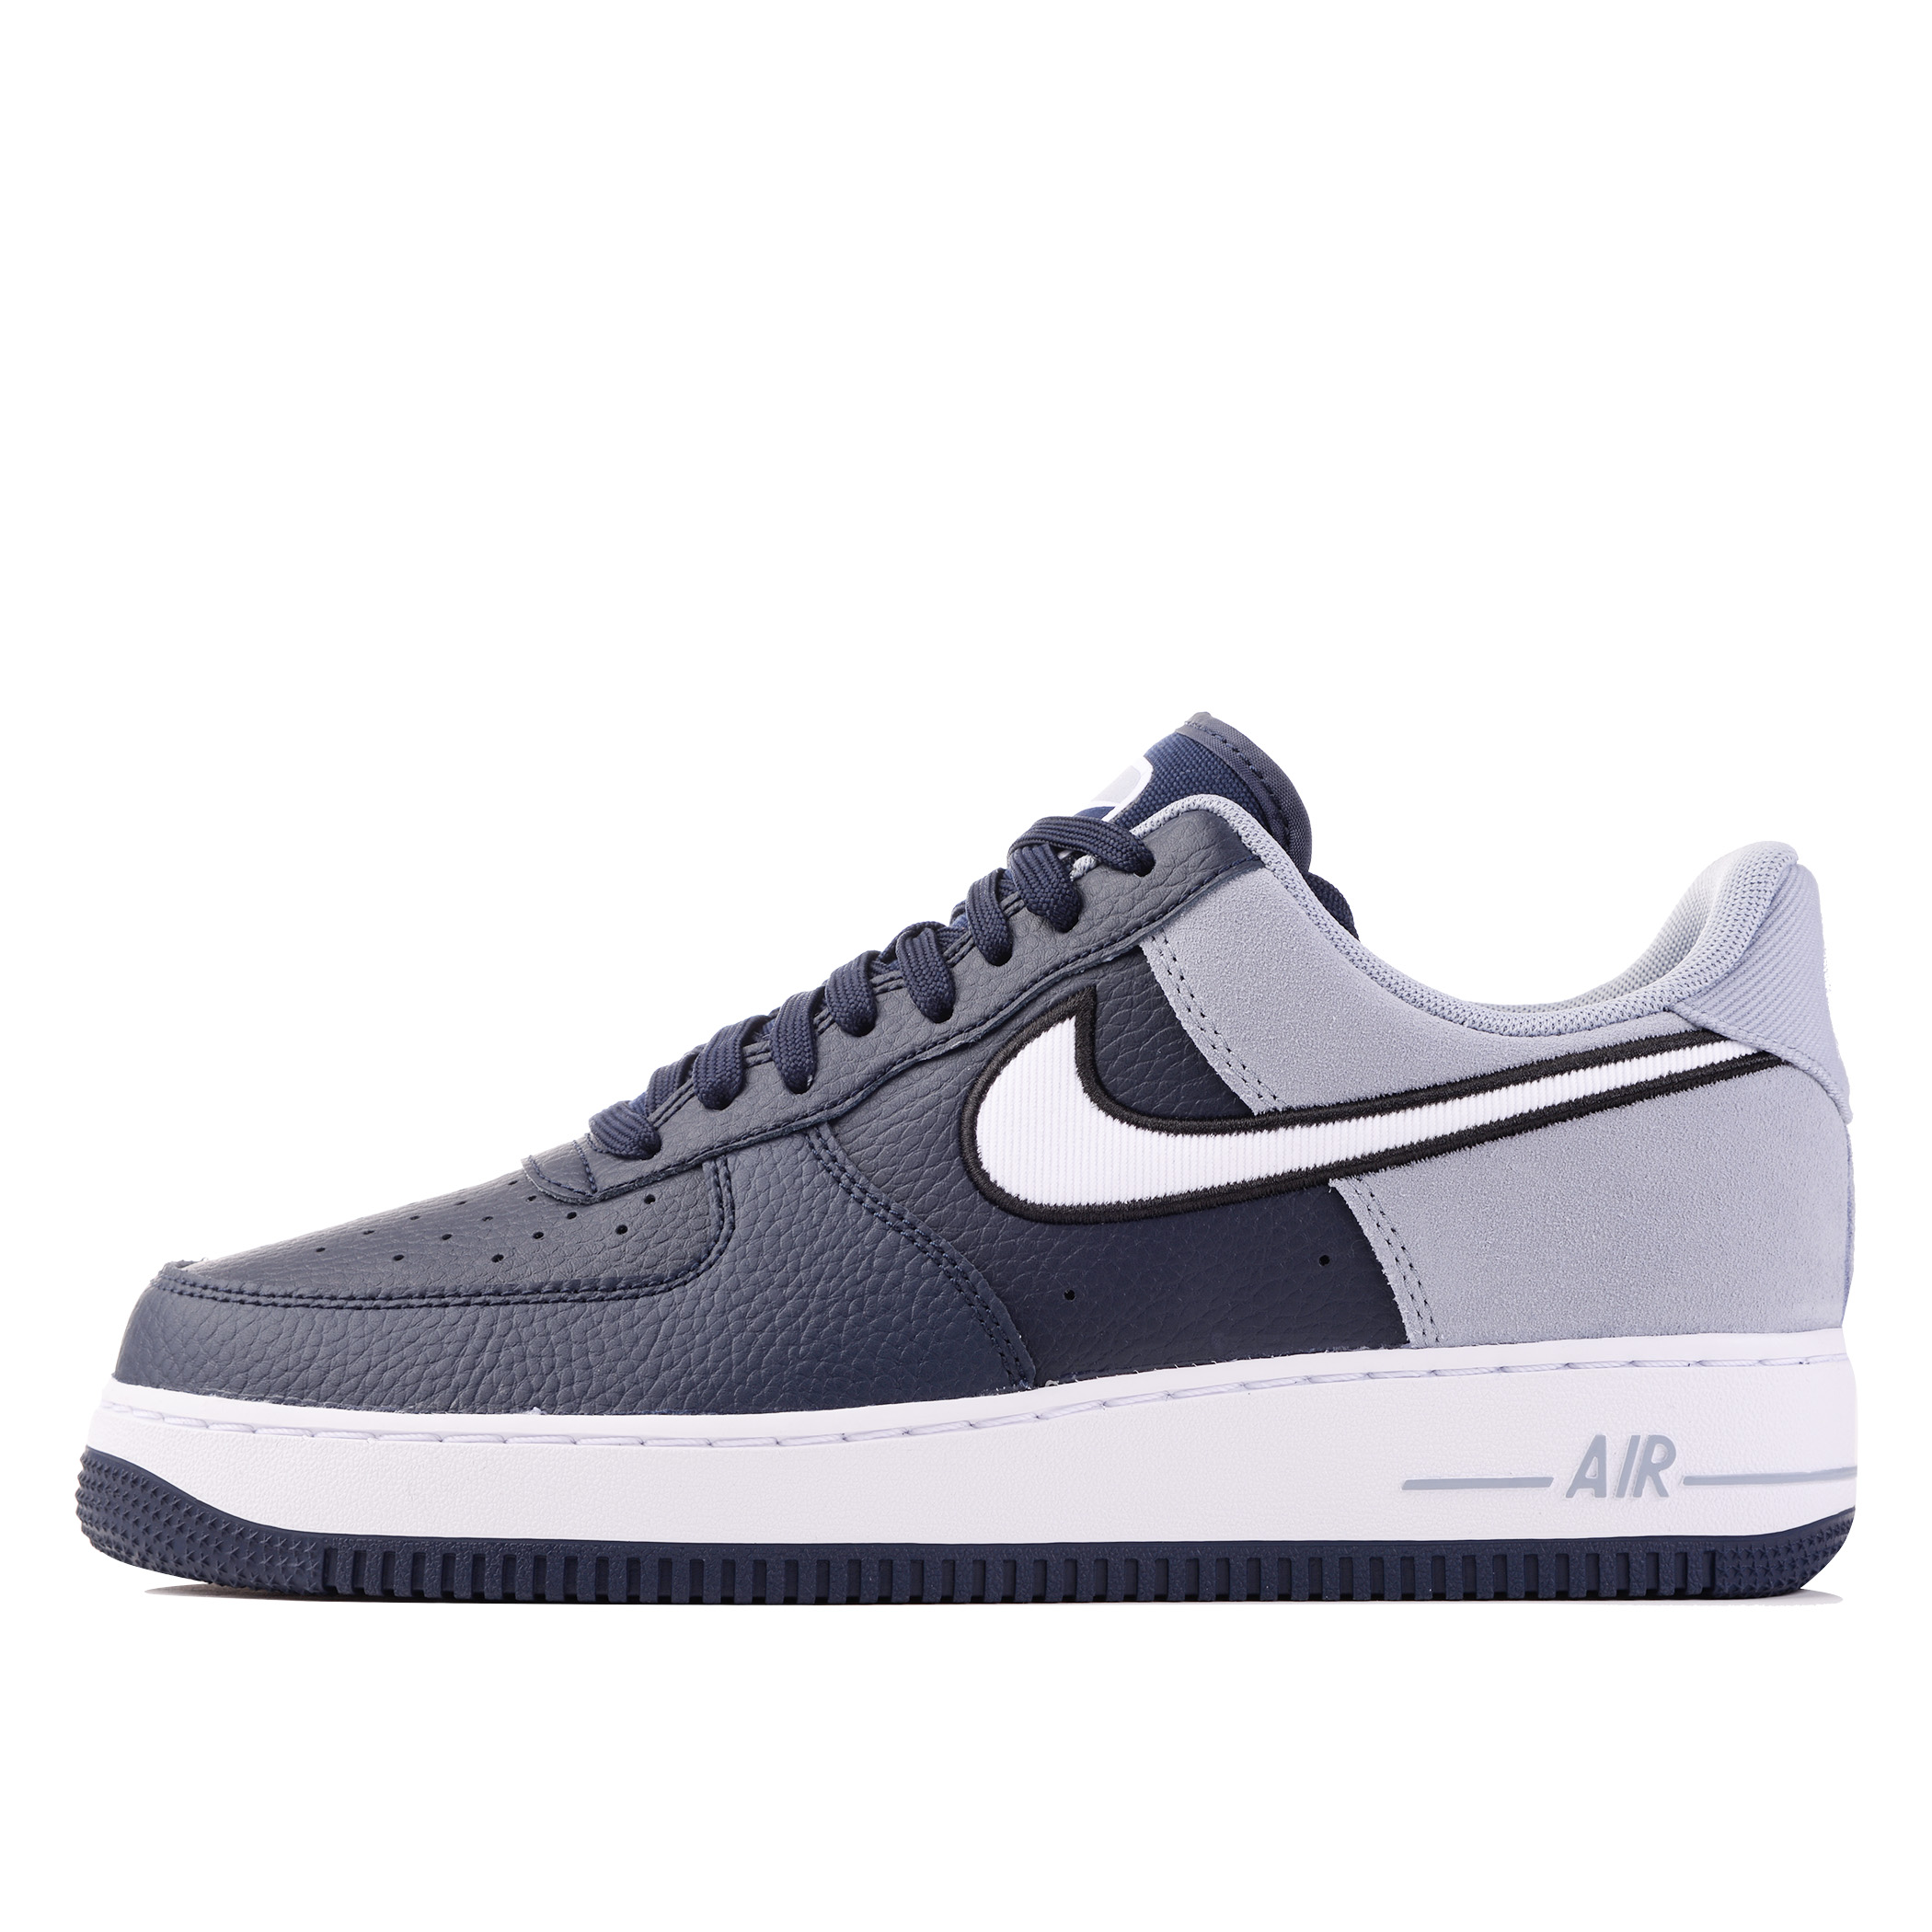 nike air force 1 flyknit 2.0 college navywhite obsidian